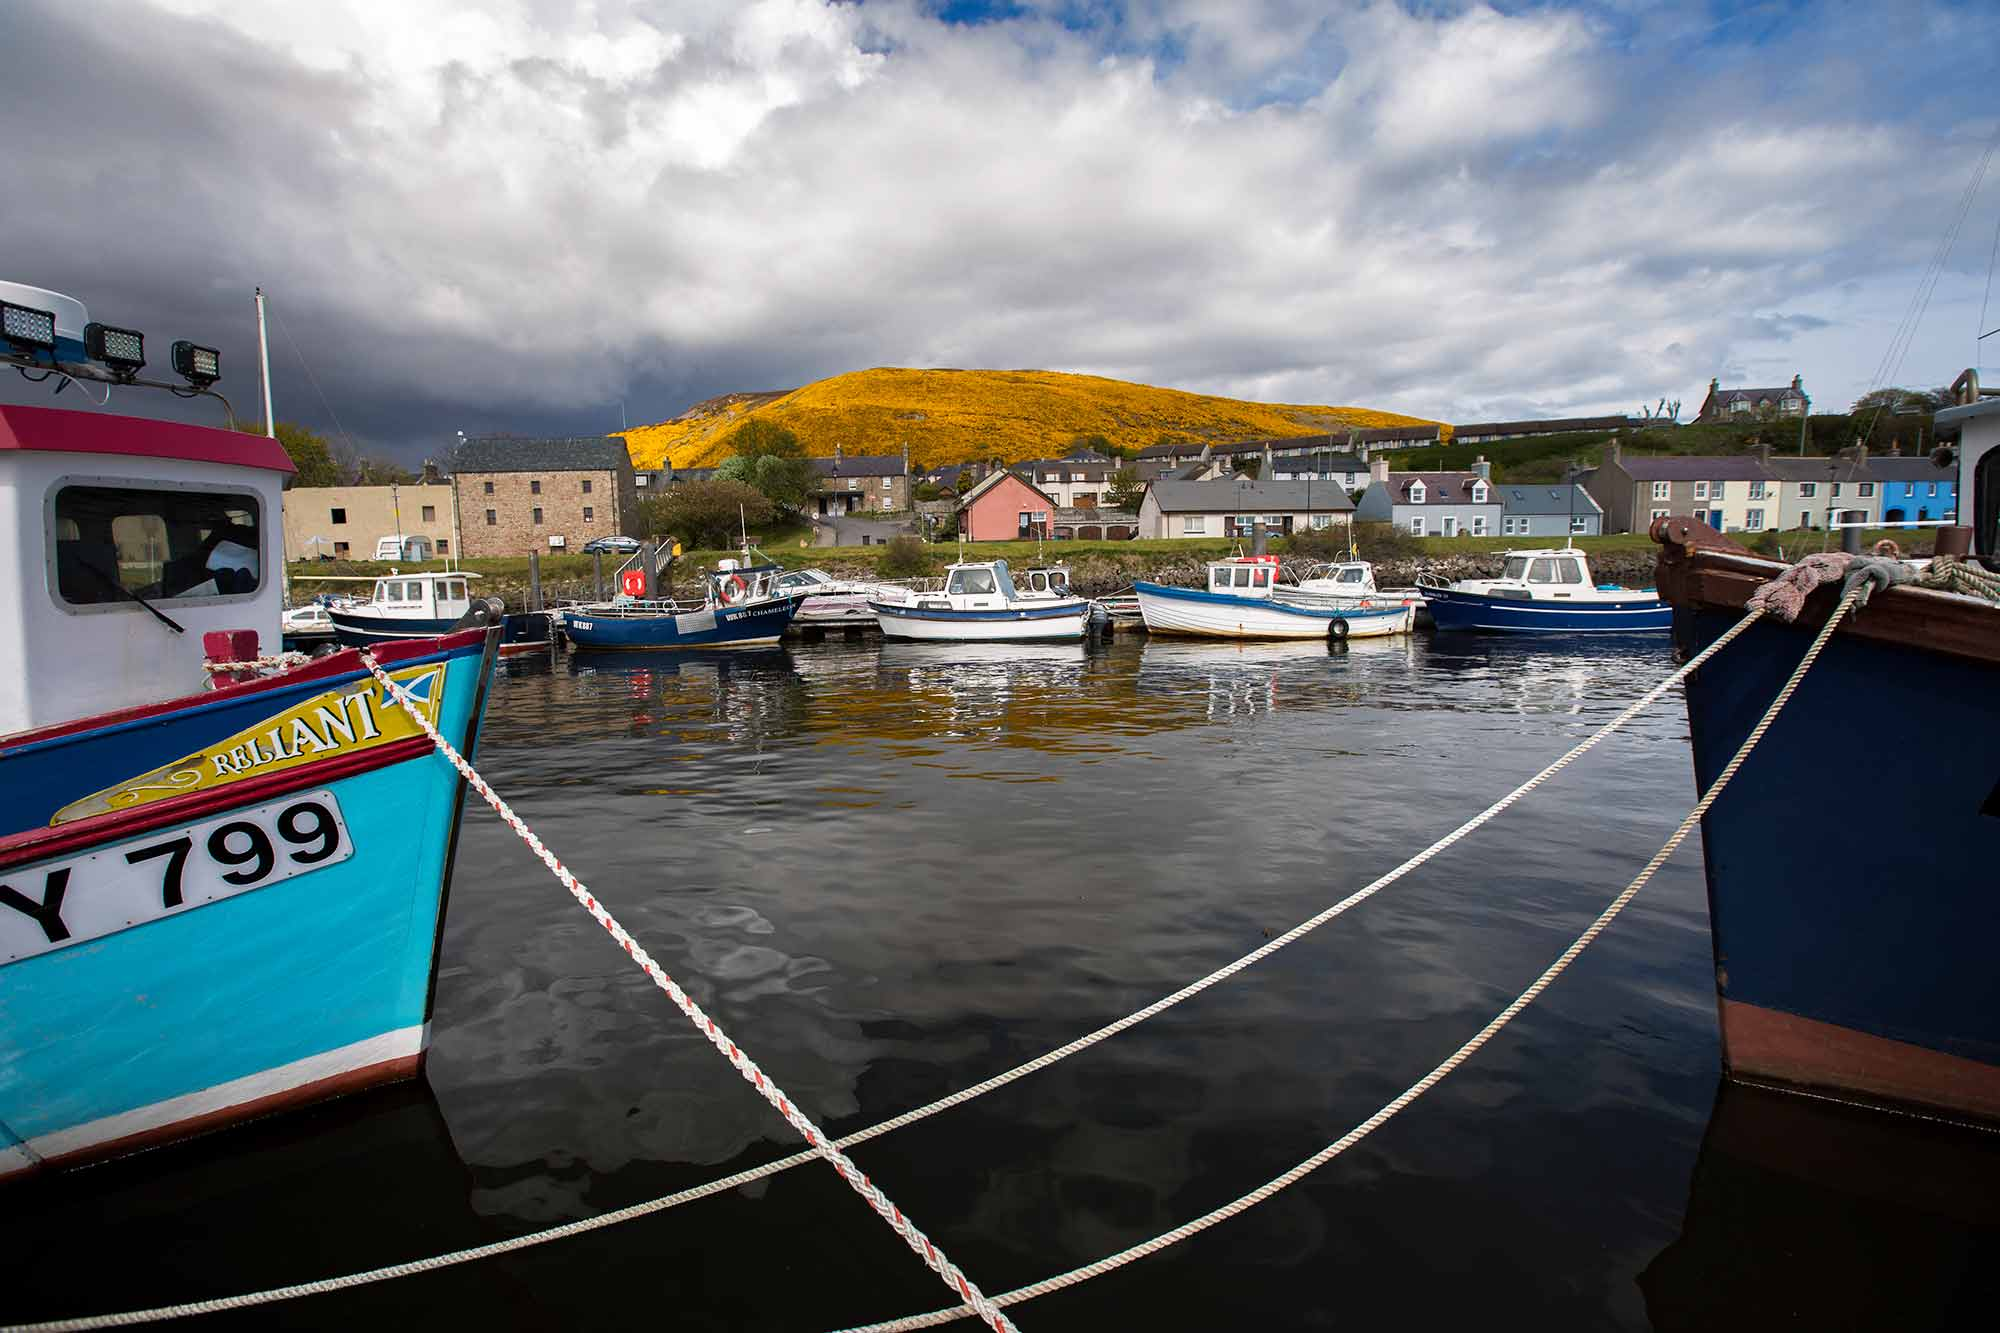 During our road trip through Scotland, we passed this cute little town called Gourdon. © ULLI MAIER & NISA MAIER